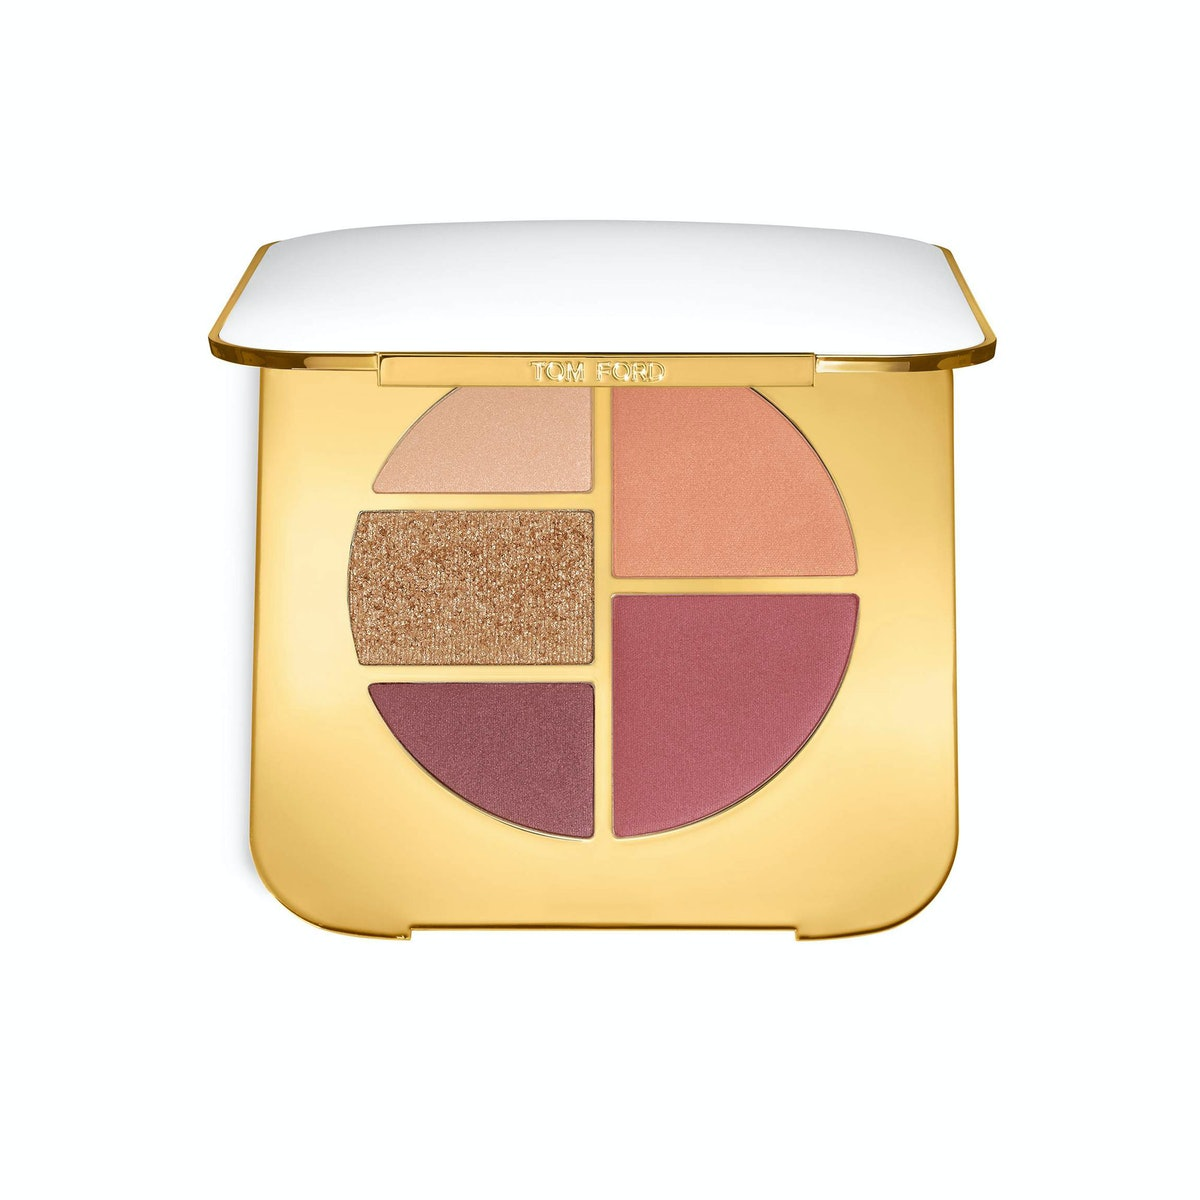 Tom Ford Eye and Cheek Compact in Pink Glow